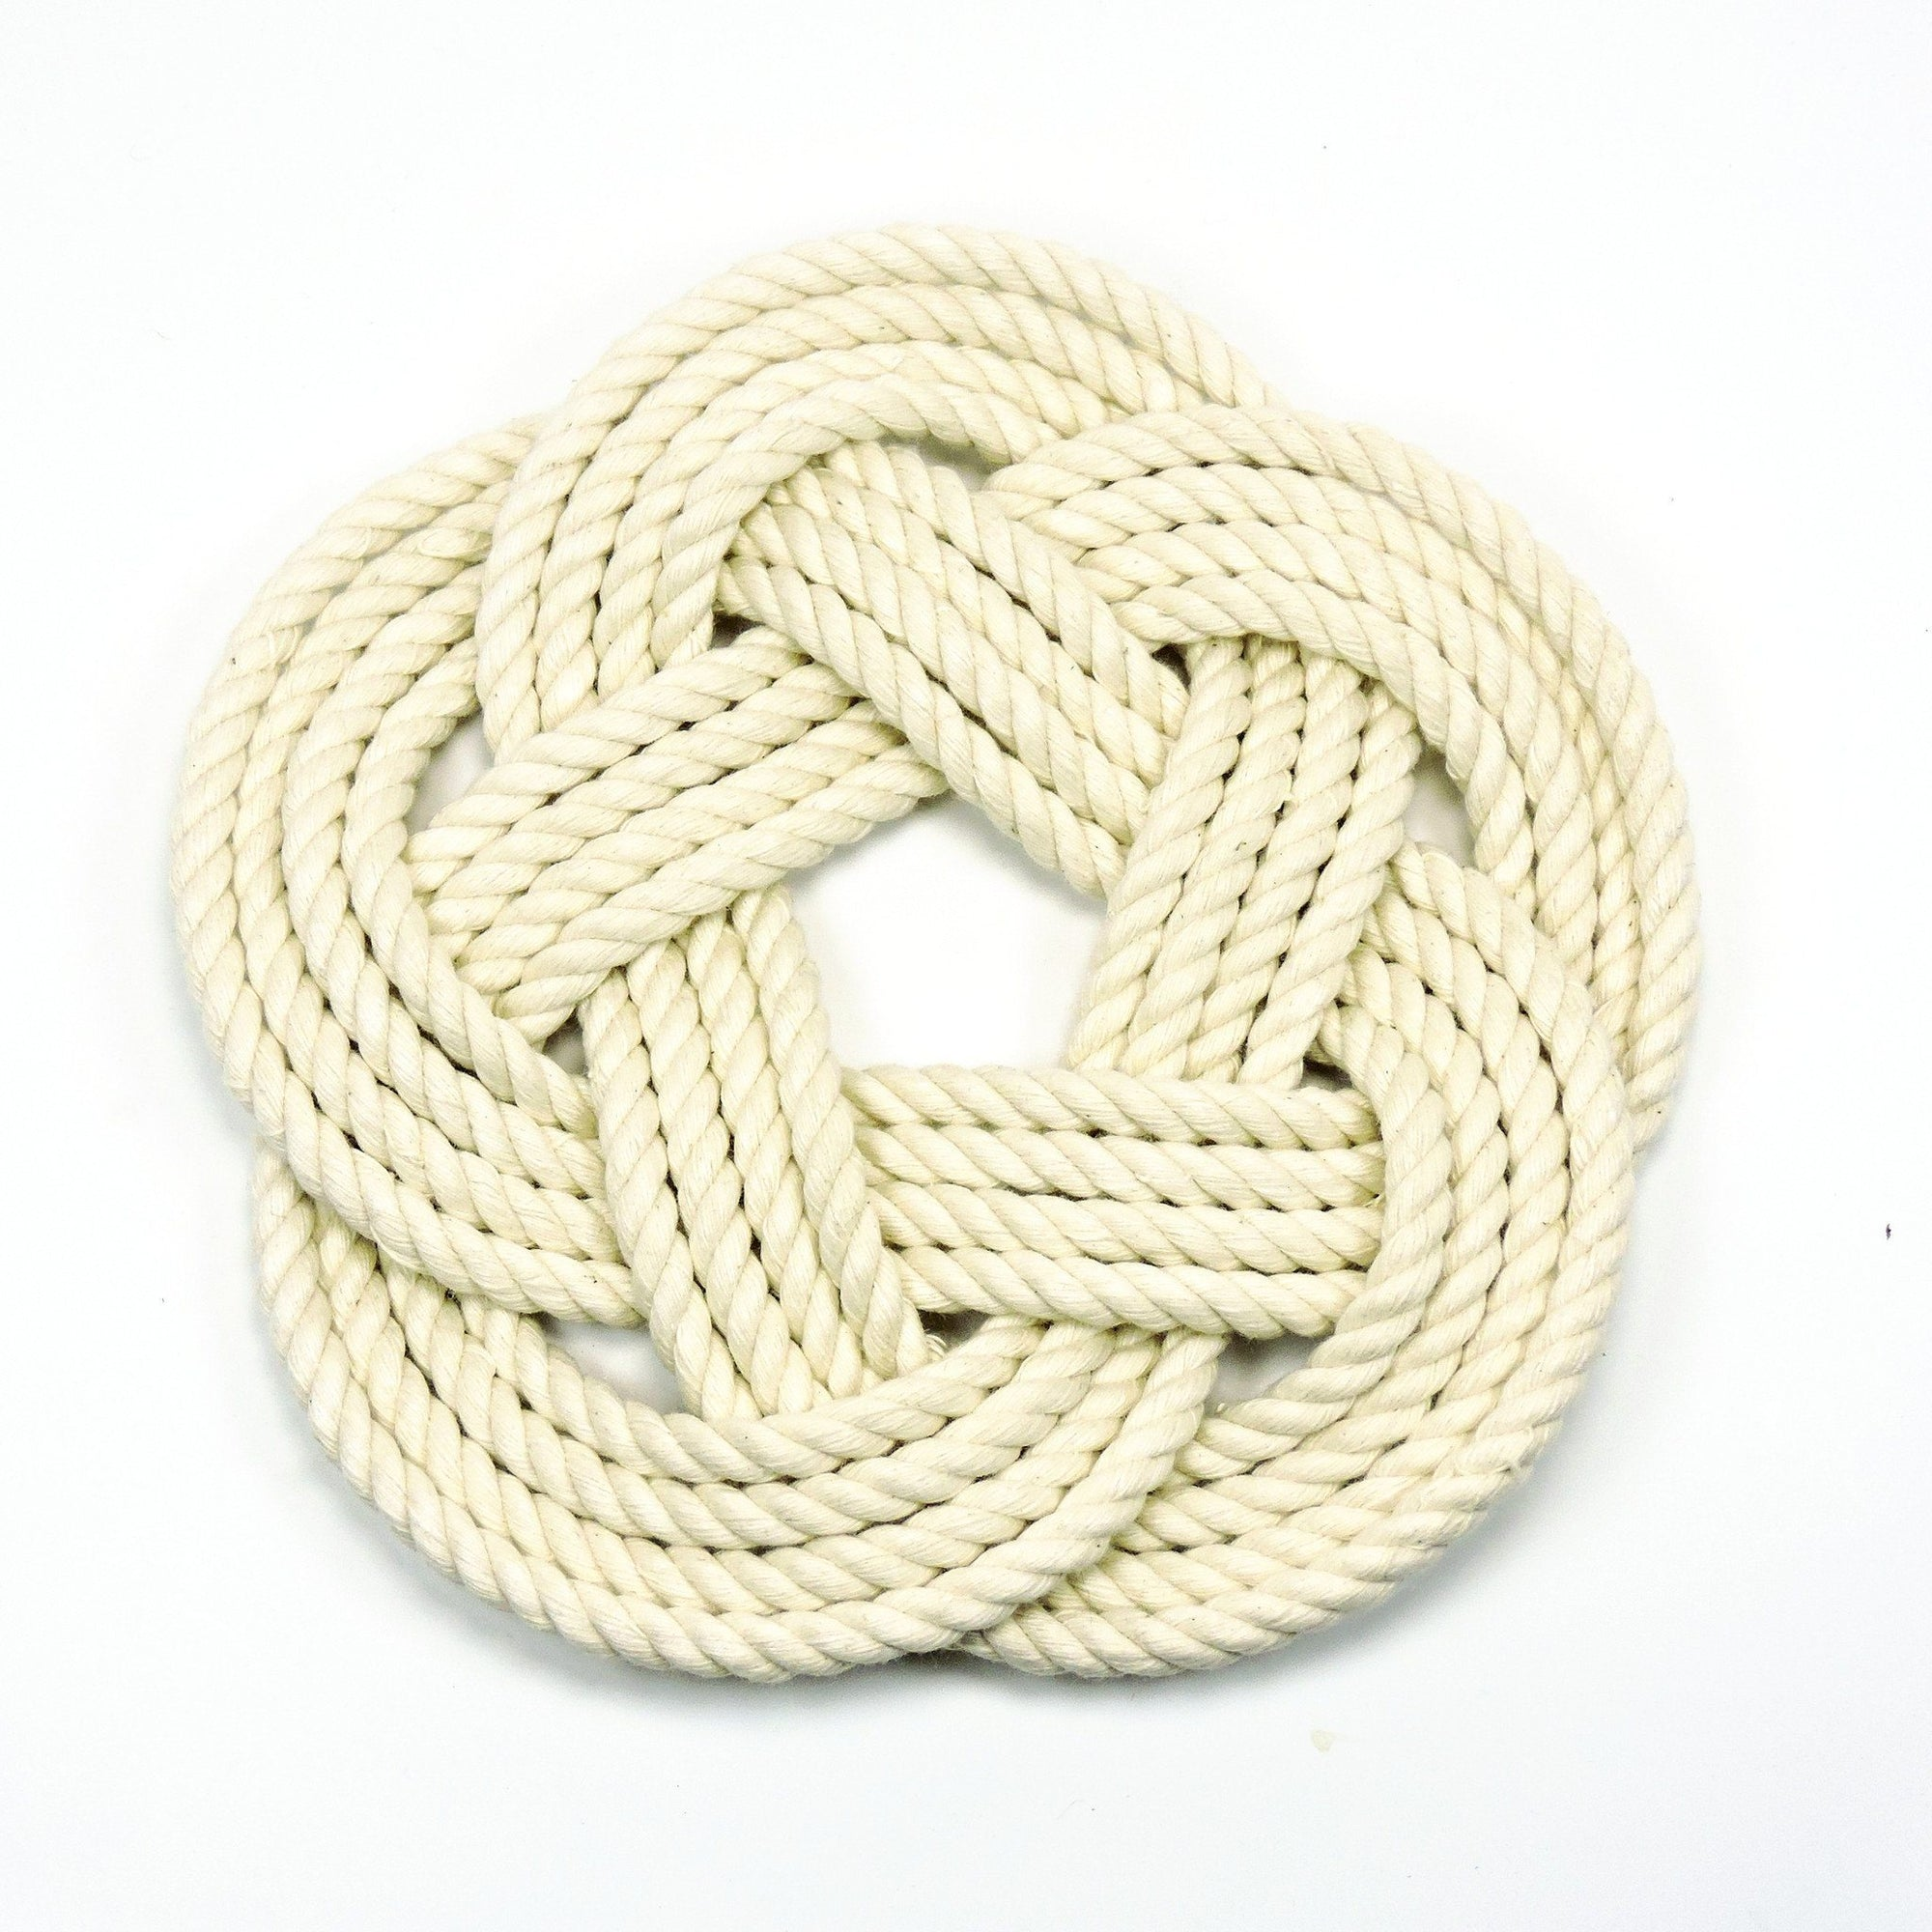 Nautical Knot Nautical Sailor Knot Trivet, Natural Cotton Rope, Small handmade at Mystic Knotwork